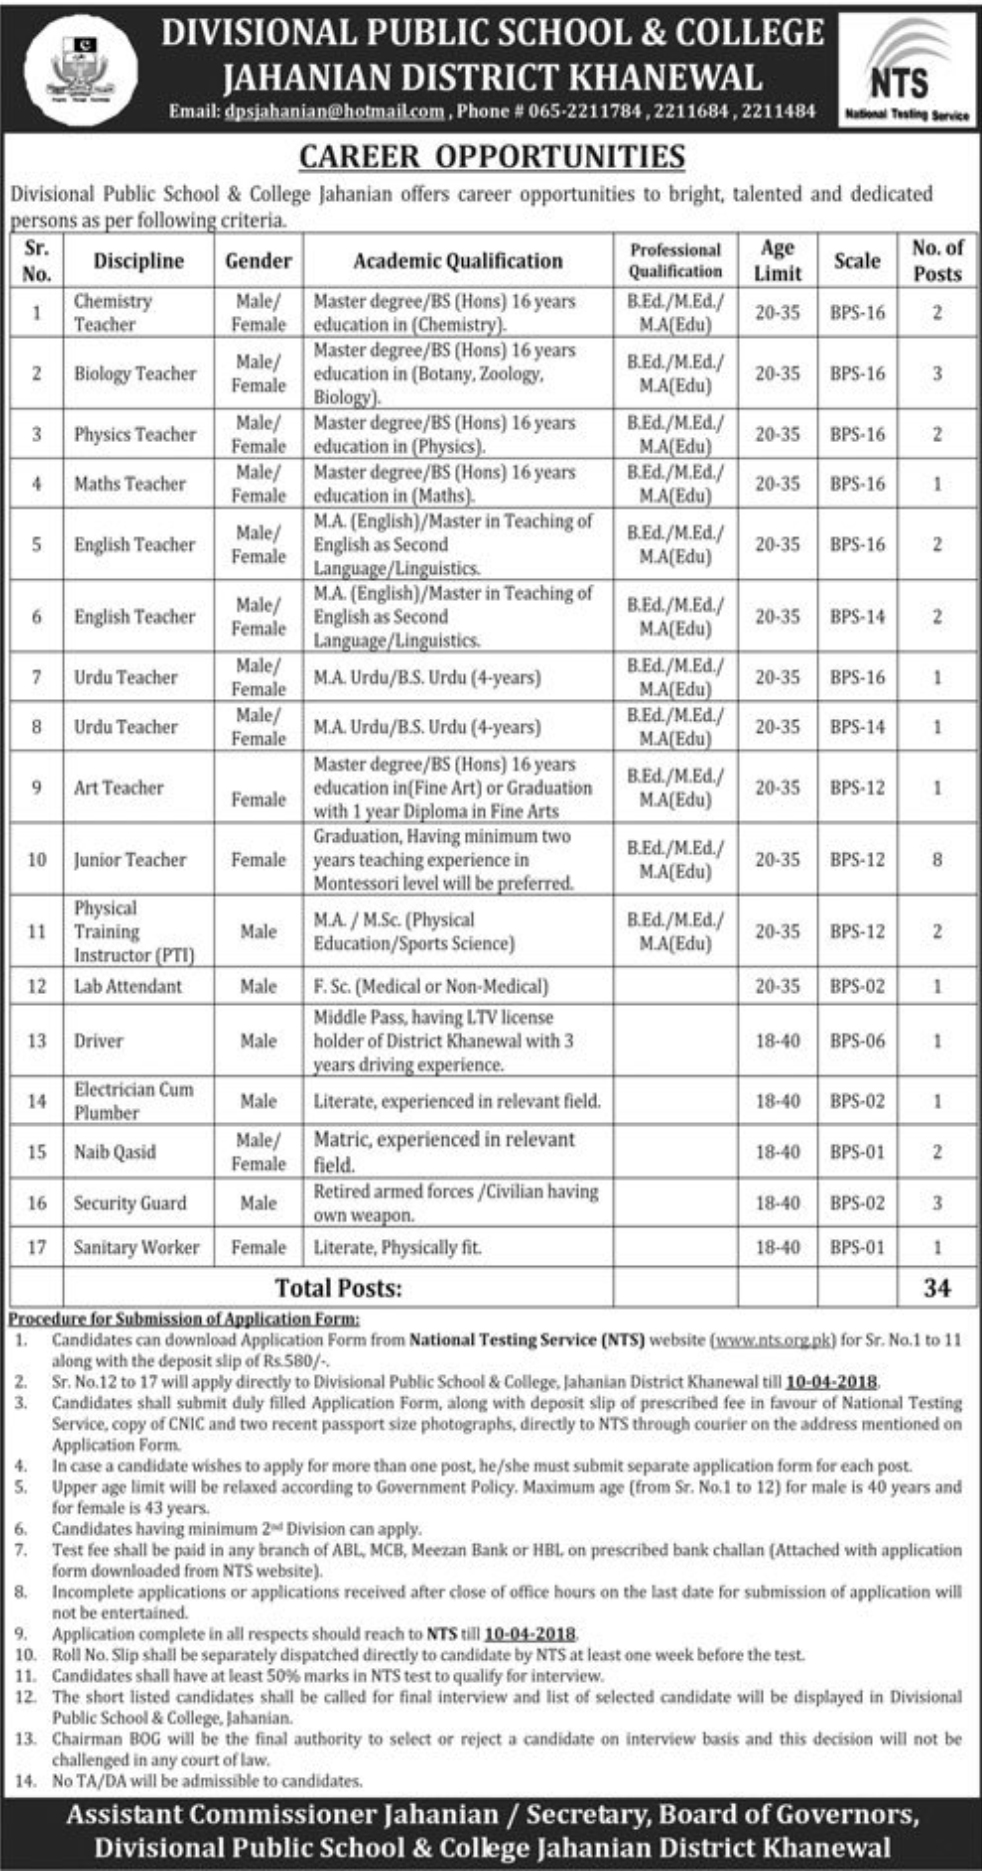 Jobs in Divisional Public School and College Khanewal 23 March 2018 Daily Express Newspaper